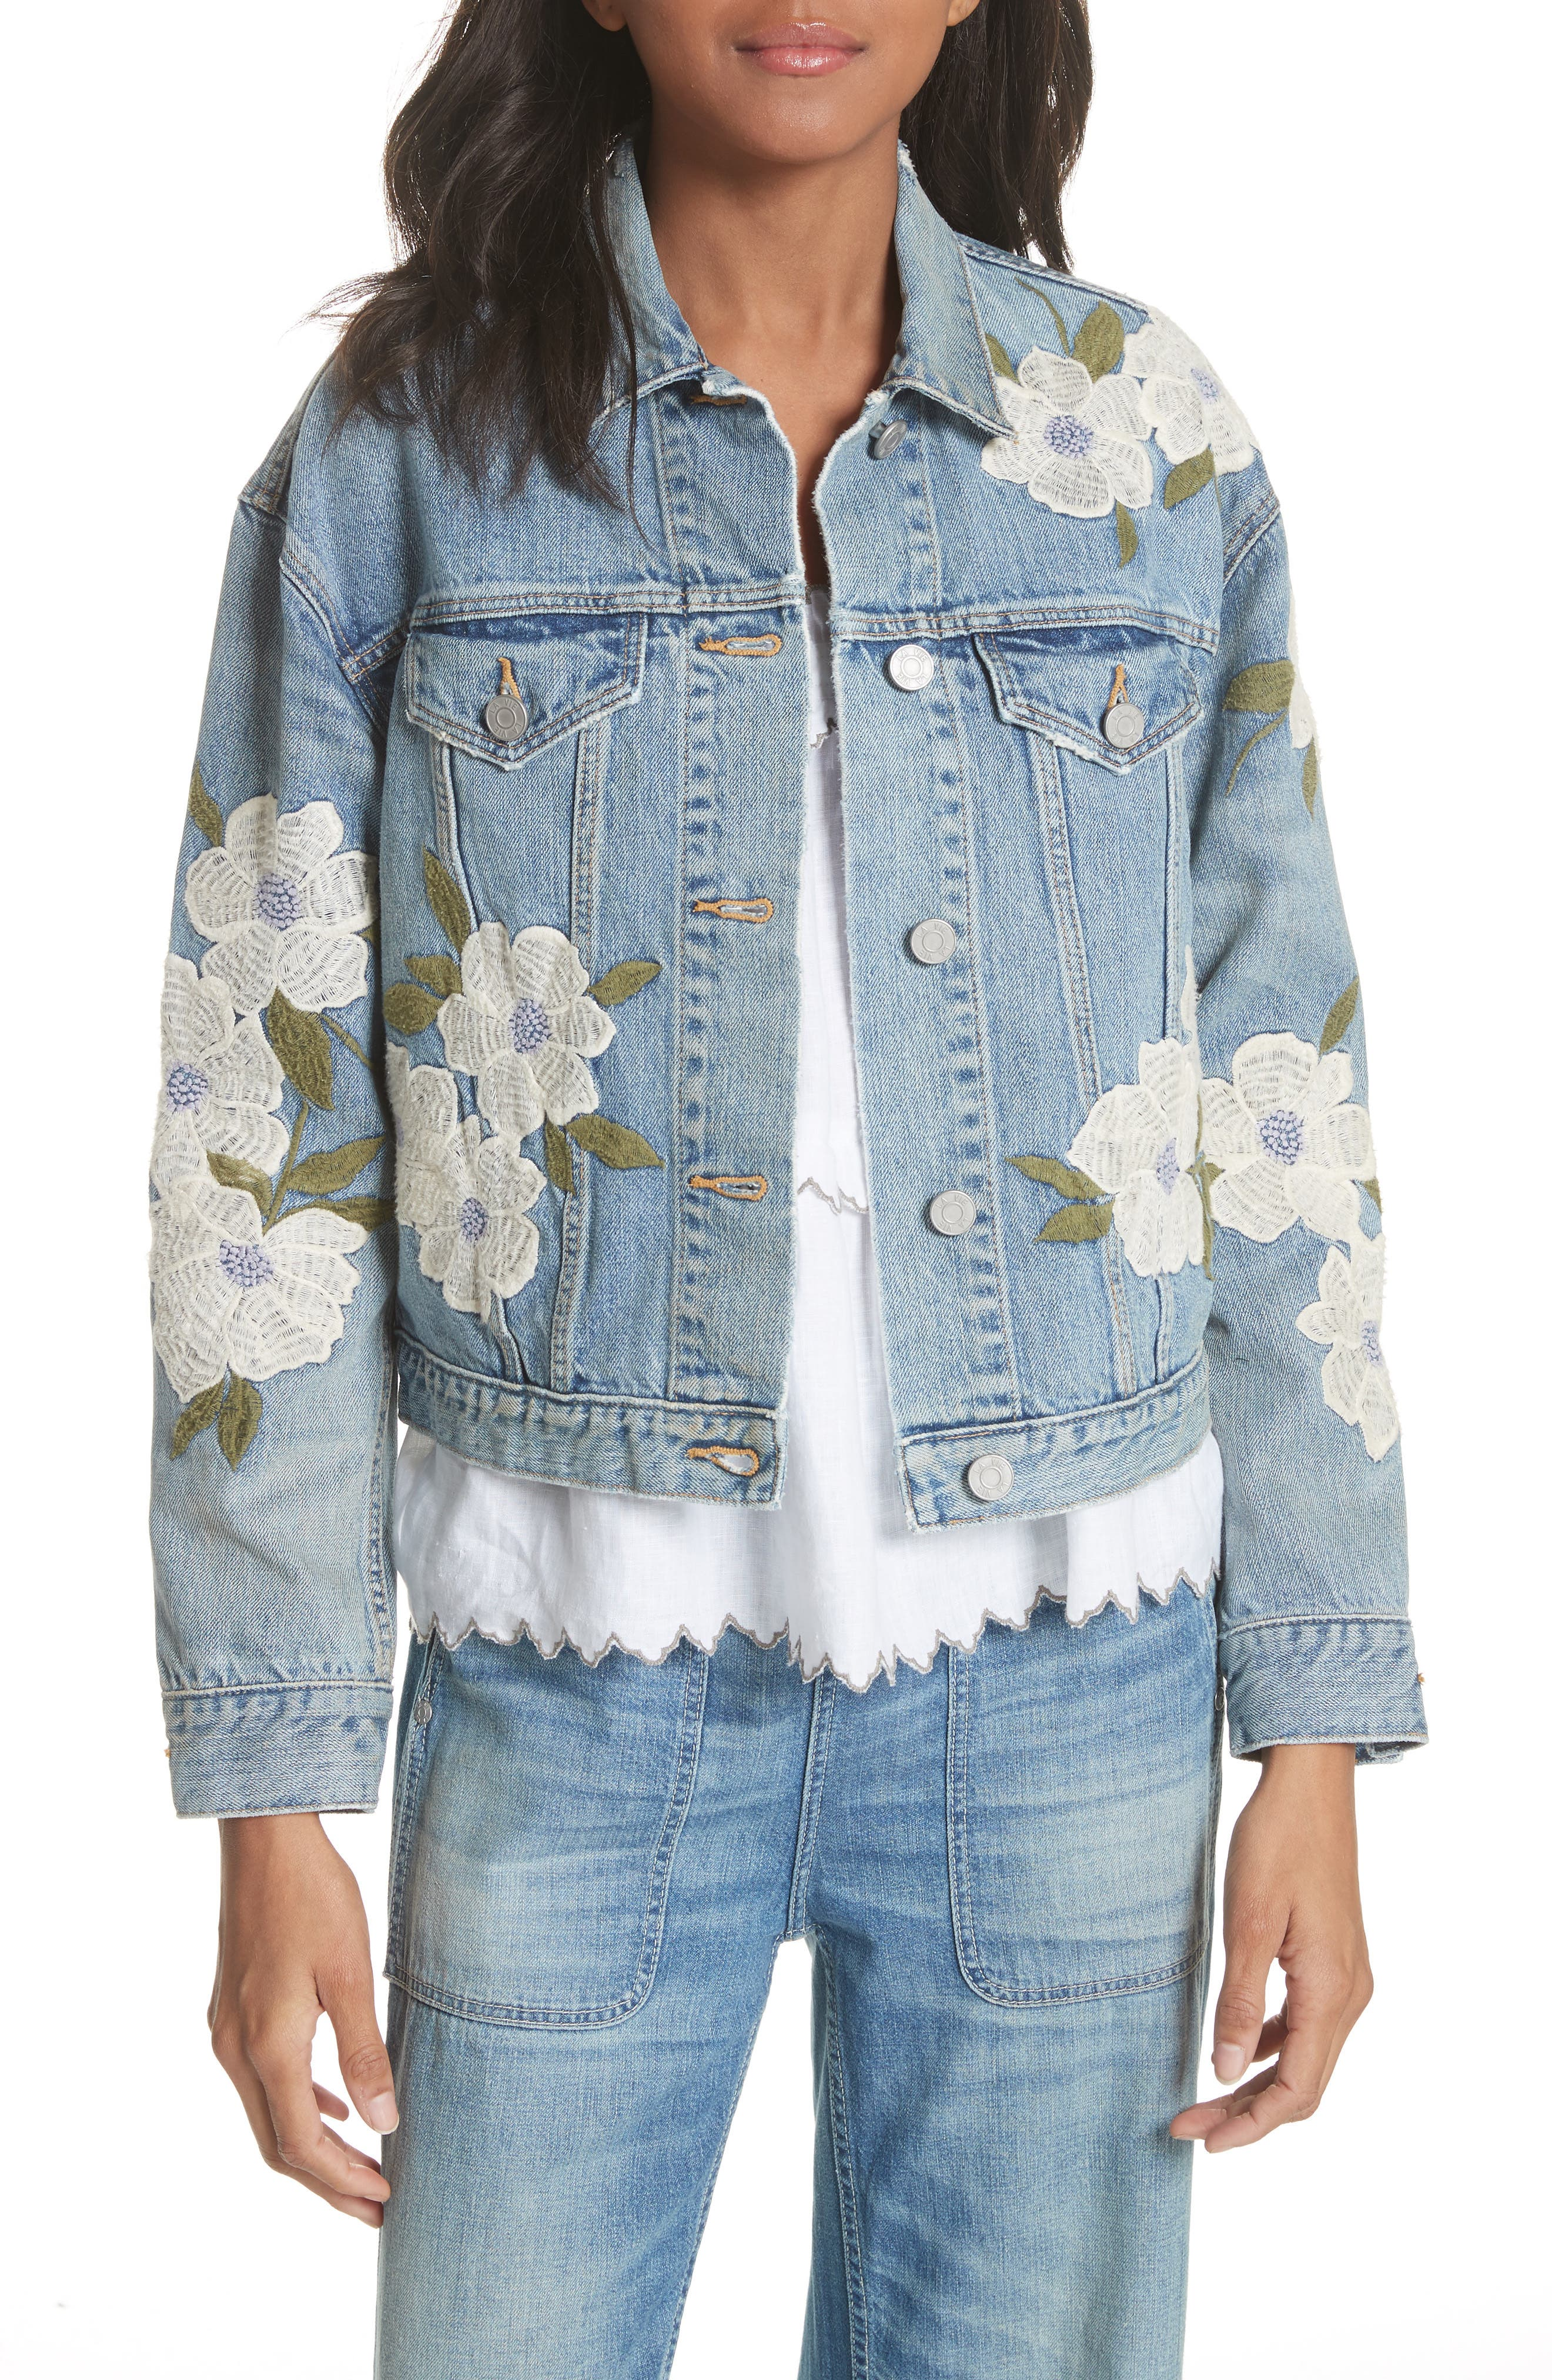 La Vie Rebecca Taylor Embroidered Denim Jacket